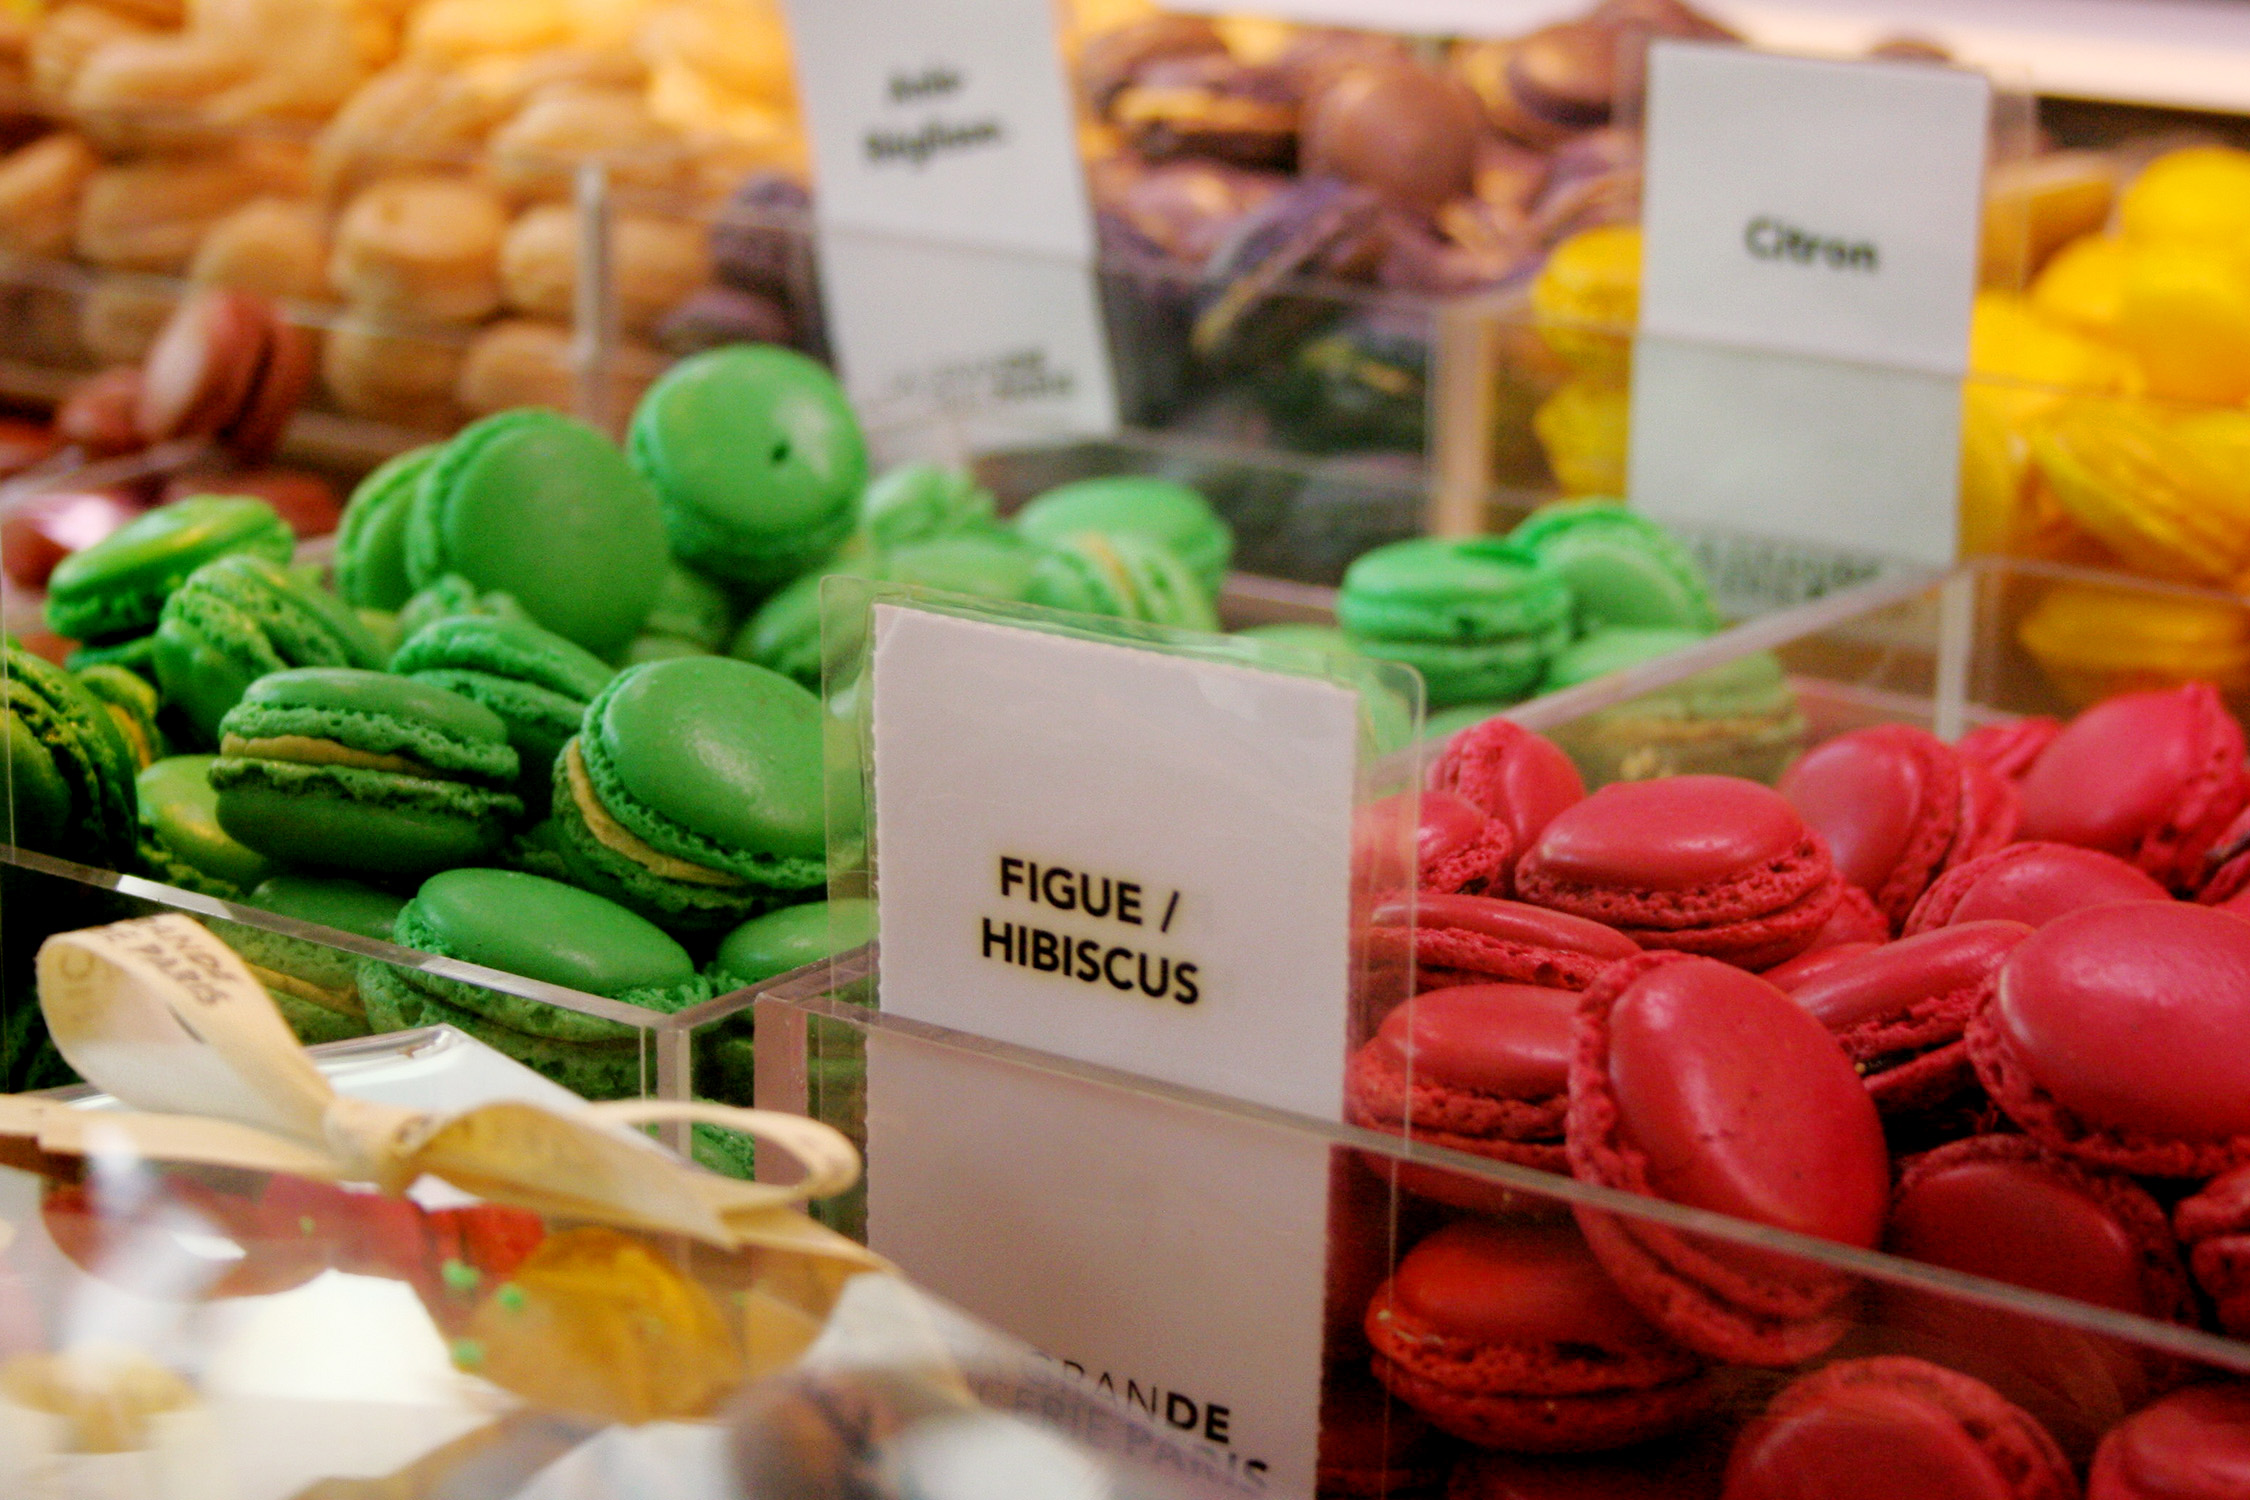 File:Macarons-lagrandeepicerie.JPG - Wikipedia, the free encyclopedia